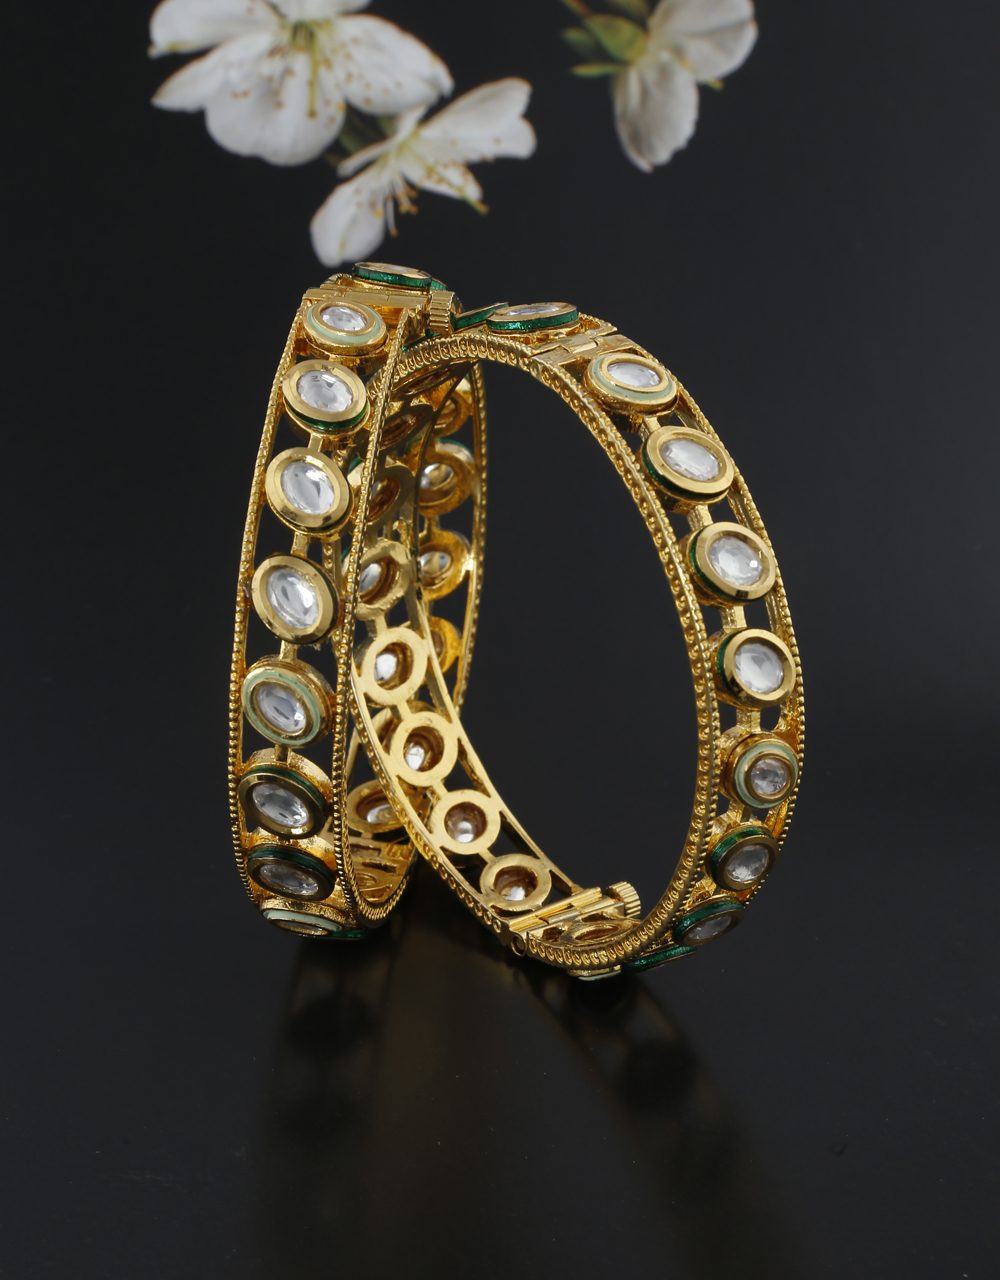 Exclusive Golden Finish Encrusted With Kundan Traditional Bangles Design.